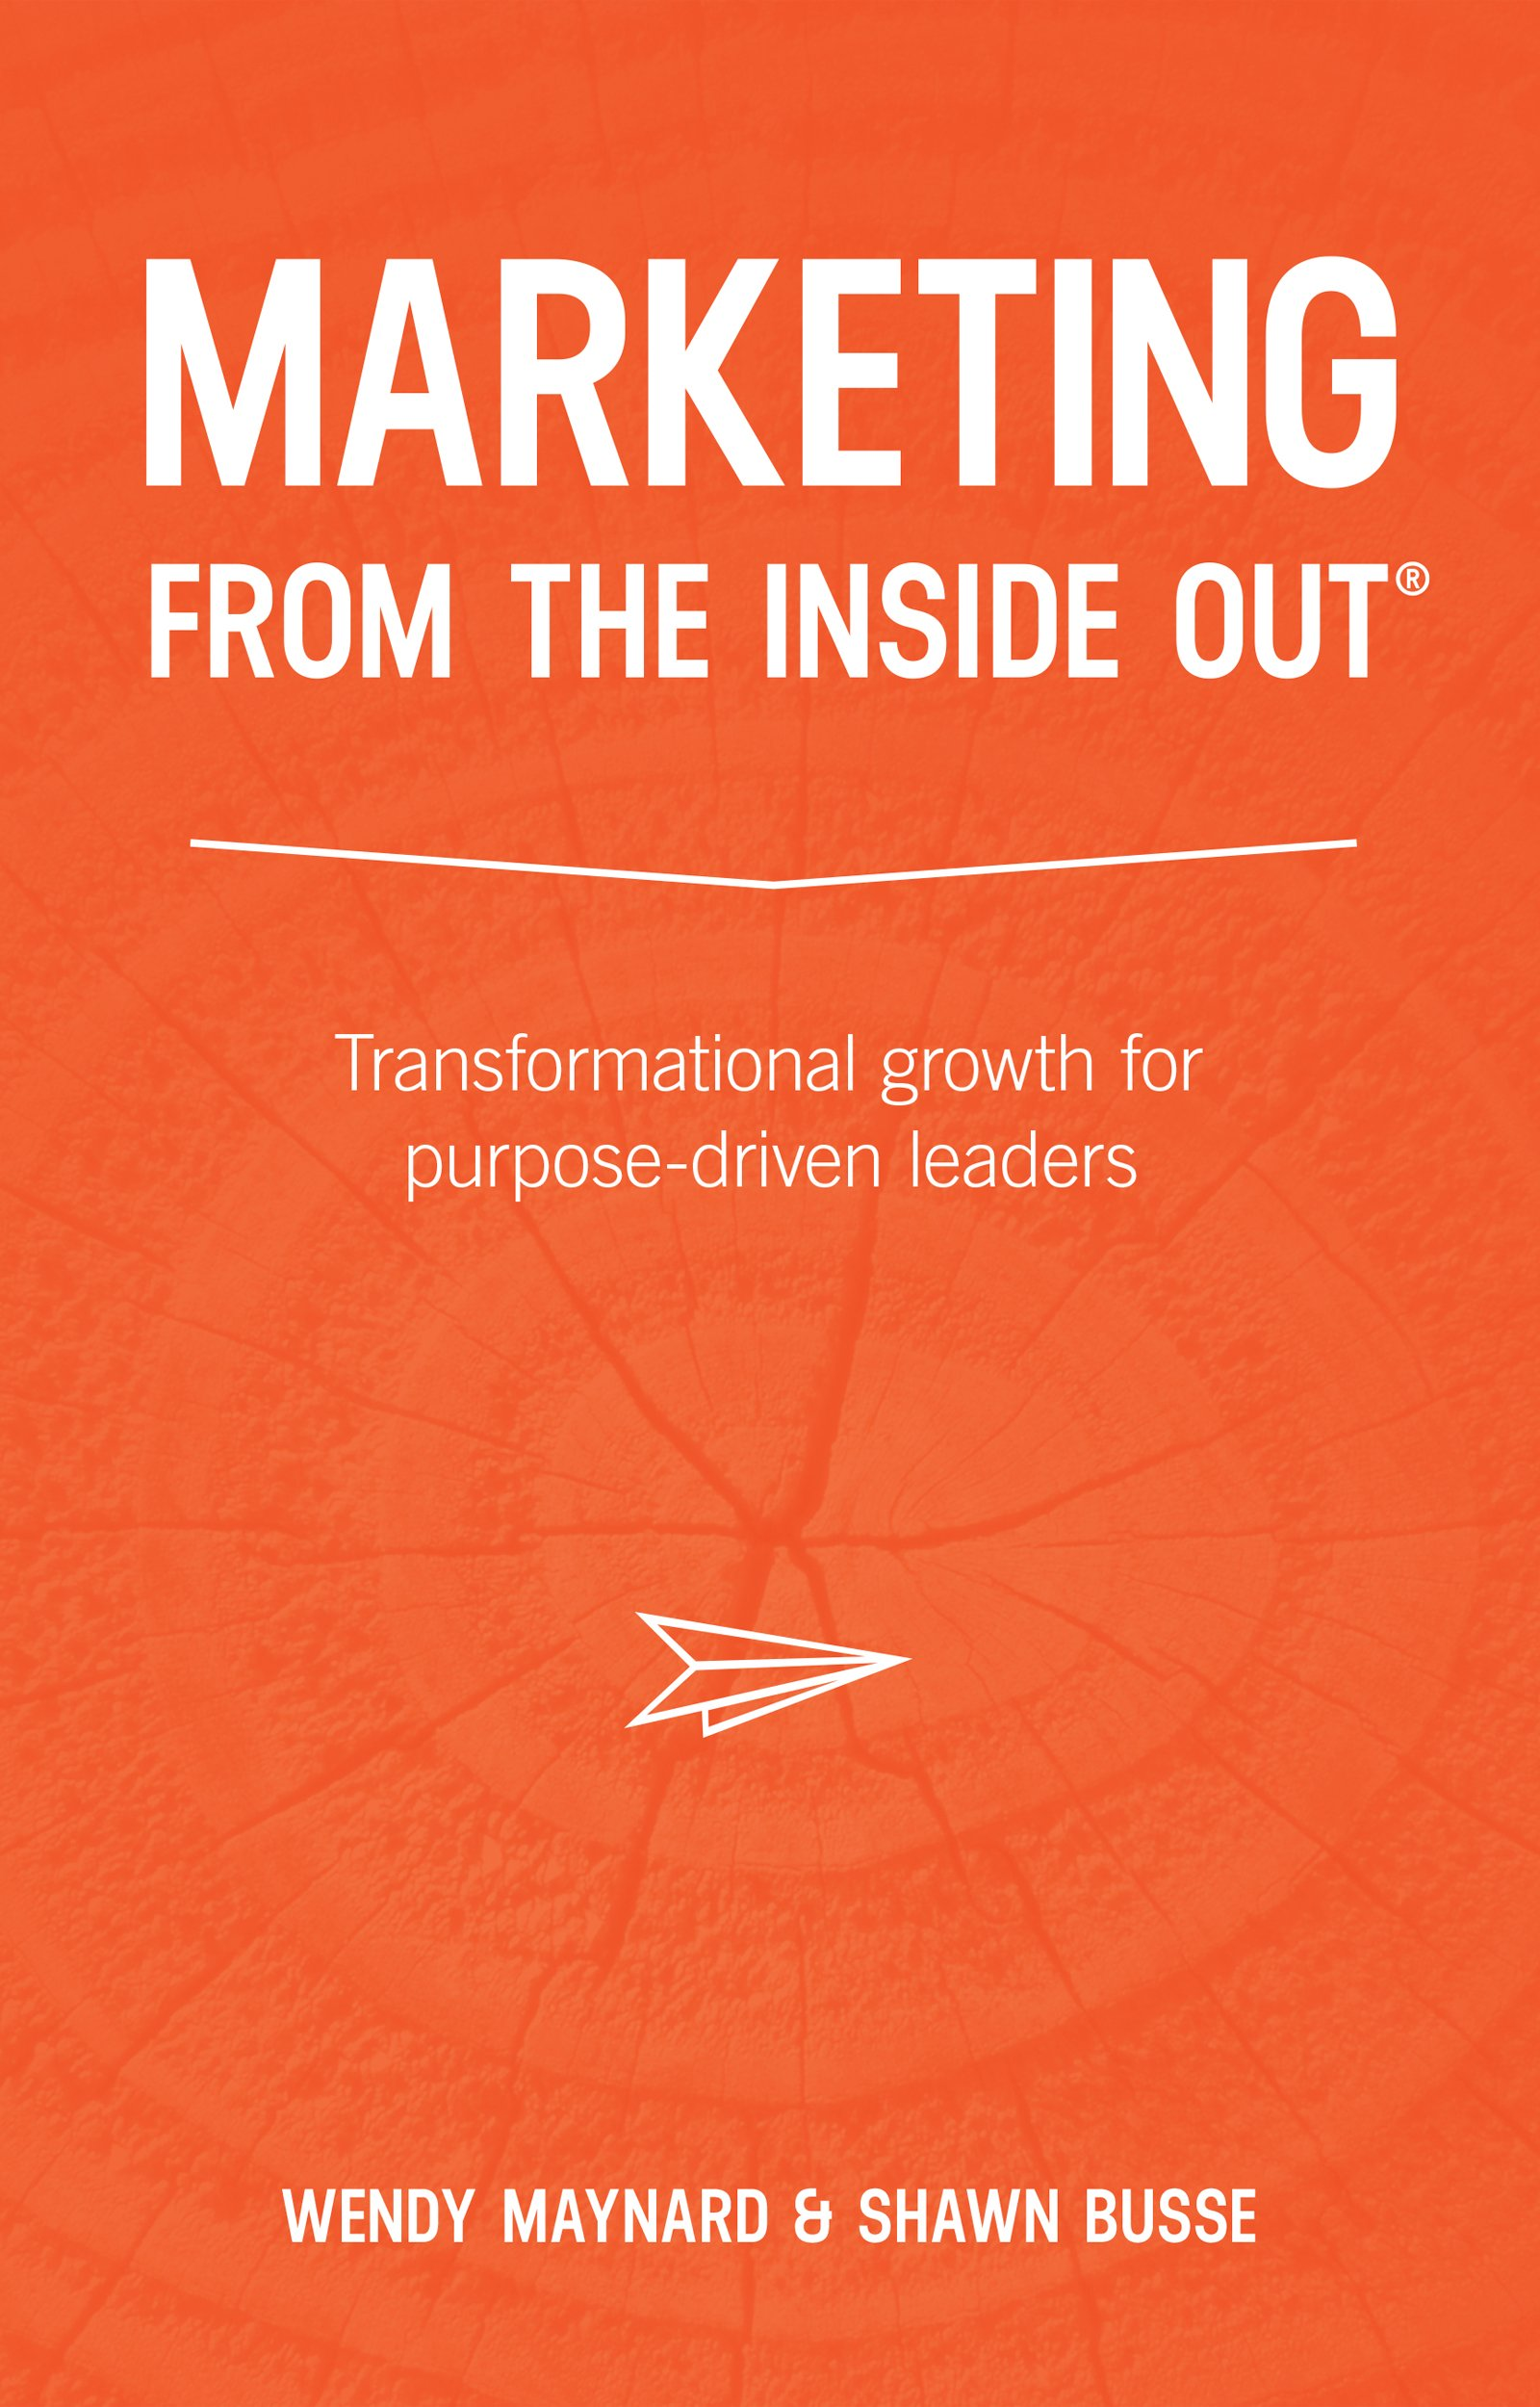 MARKETING FROM THE INSIDE OUT ®: Transformational growth for purpose-driven leaders